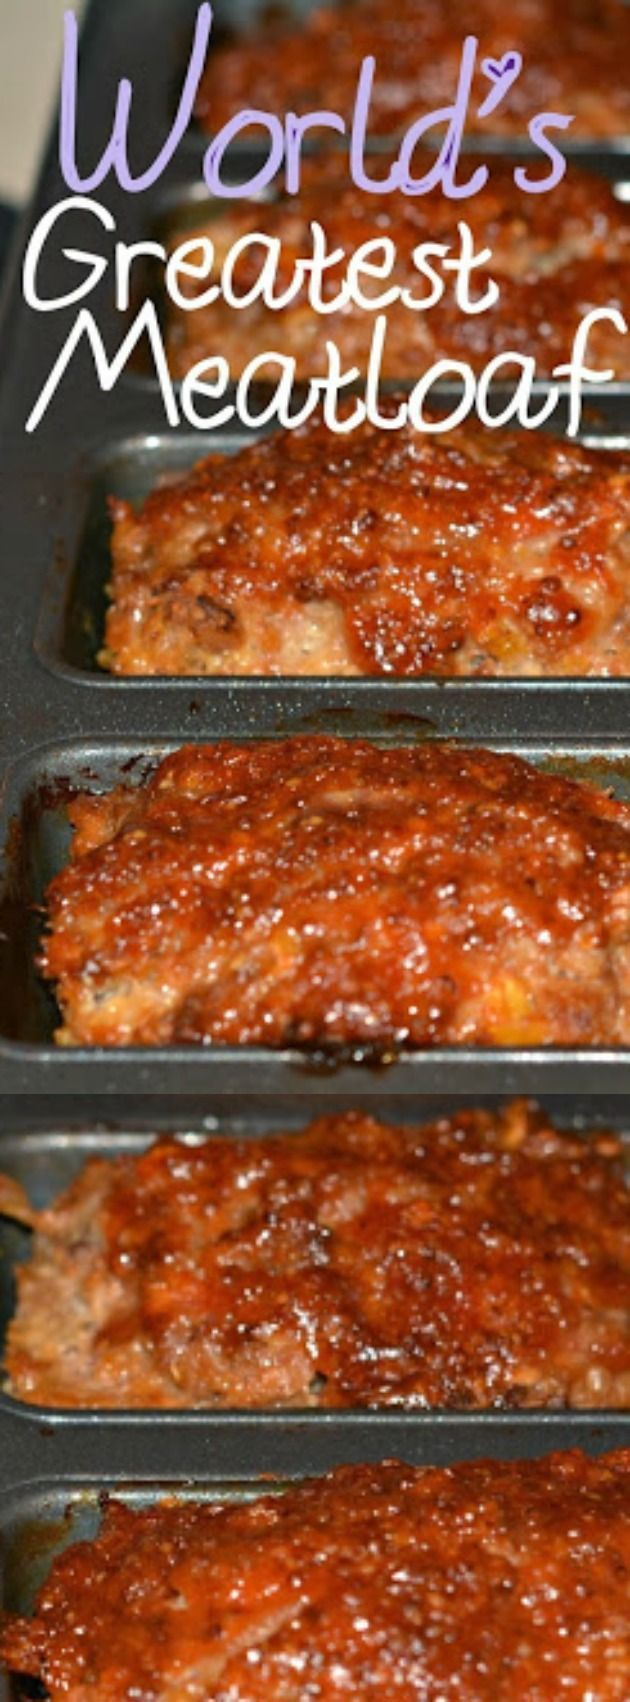 This Mom's Famous Meatloaf (aka: The Worlds Greatest Meatloaf) from Hugs and Cookies xoxo is the ultimate comfort food recipe! Did we mention that it's easy to make too?!